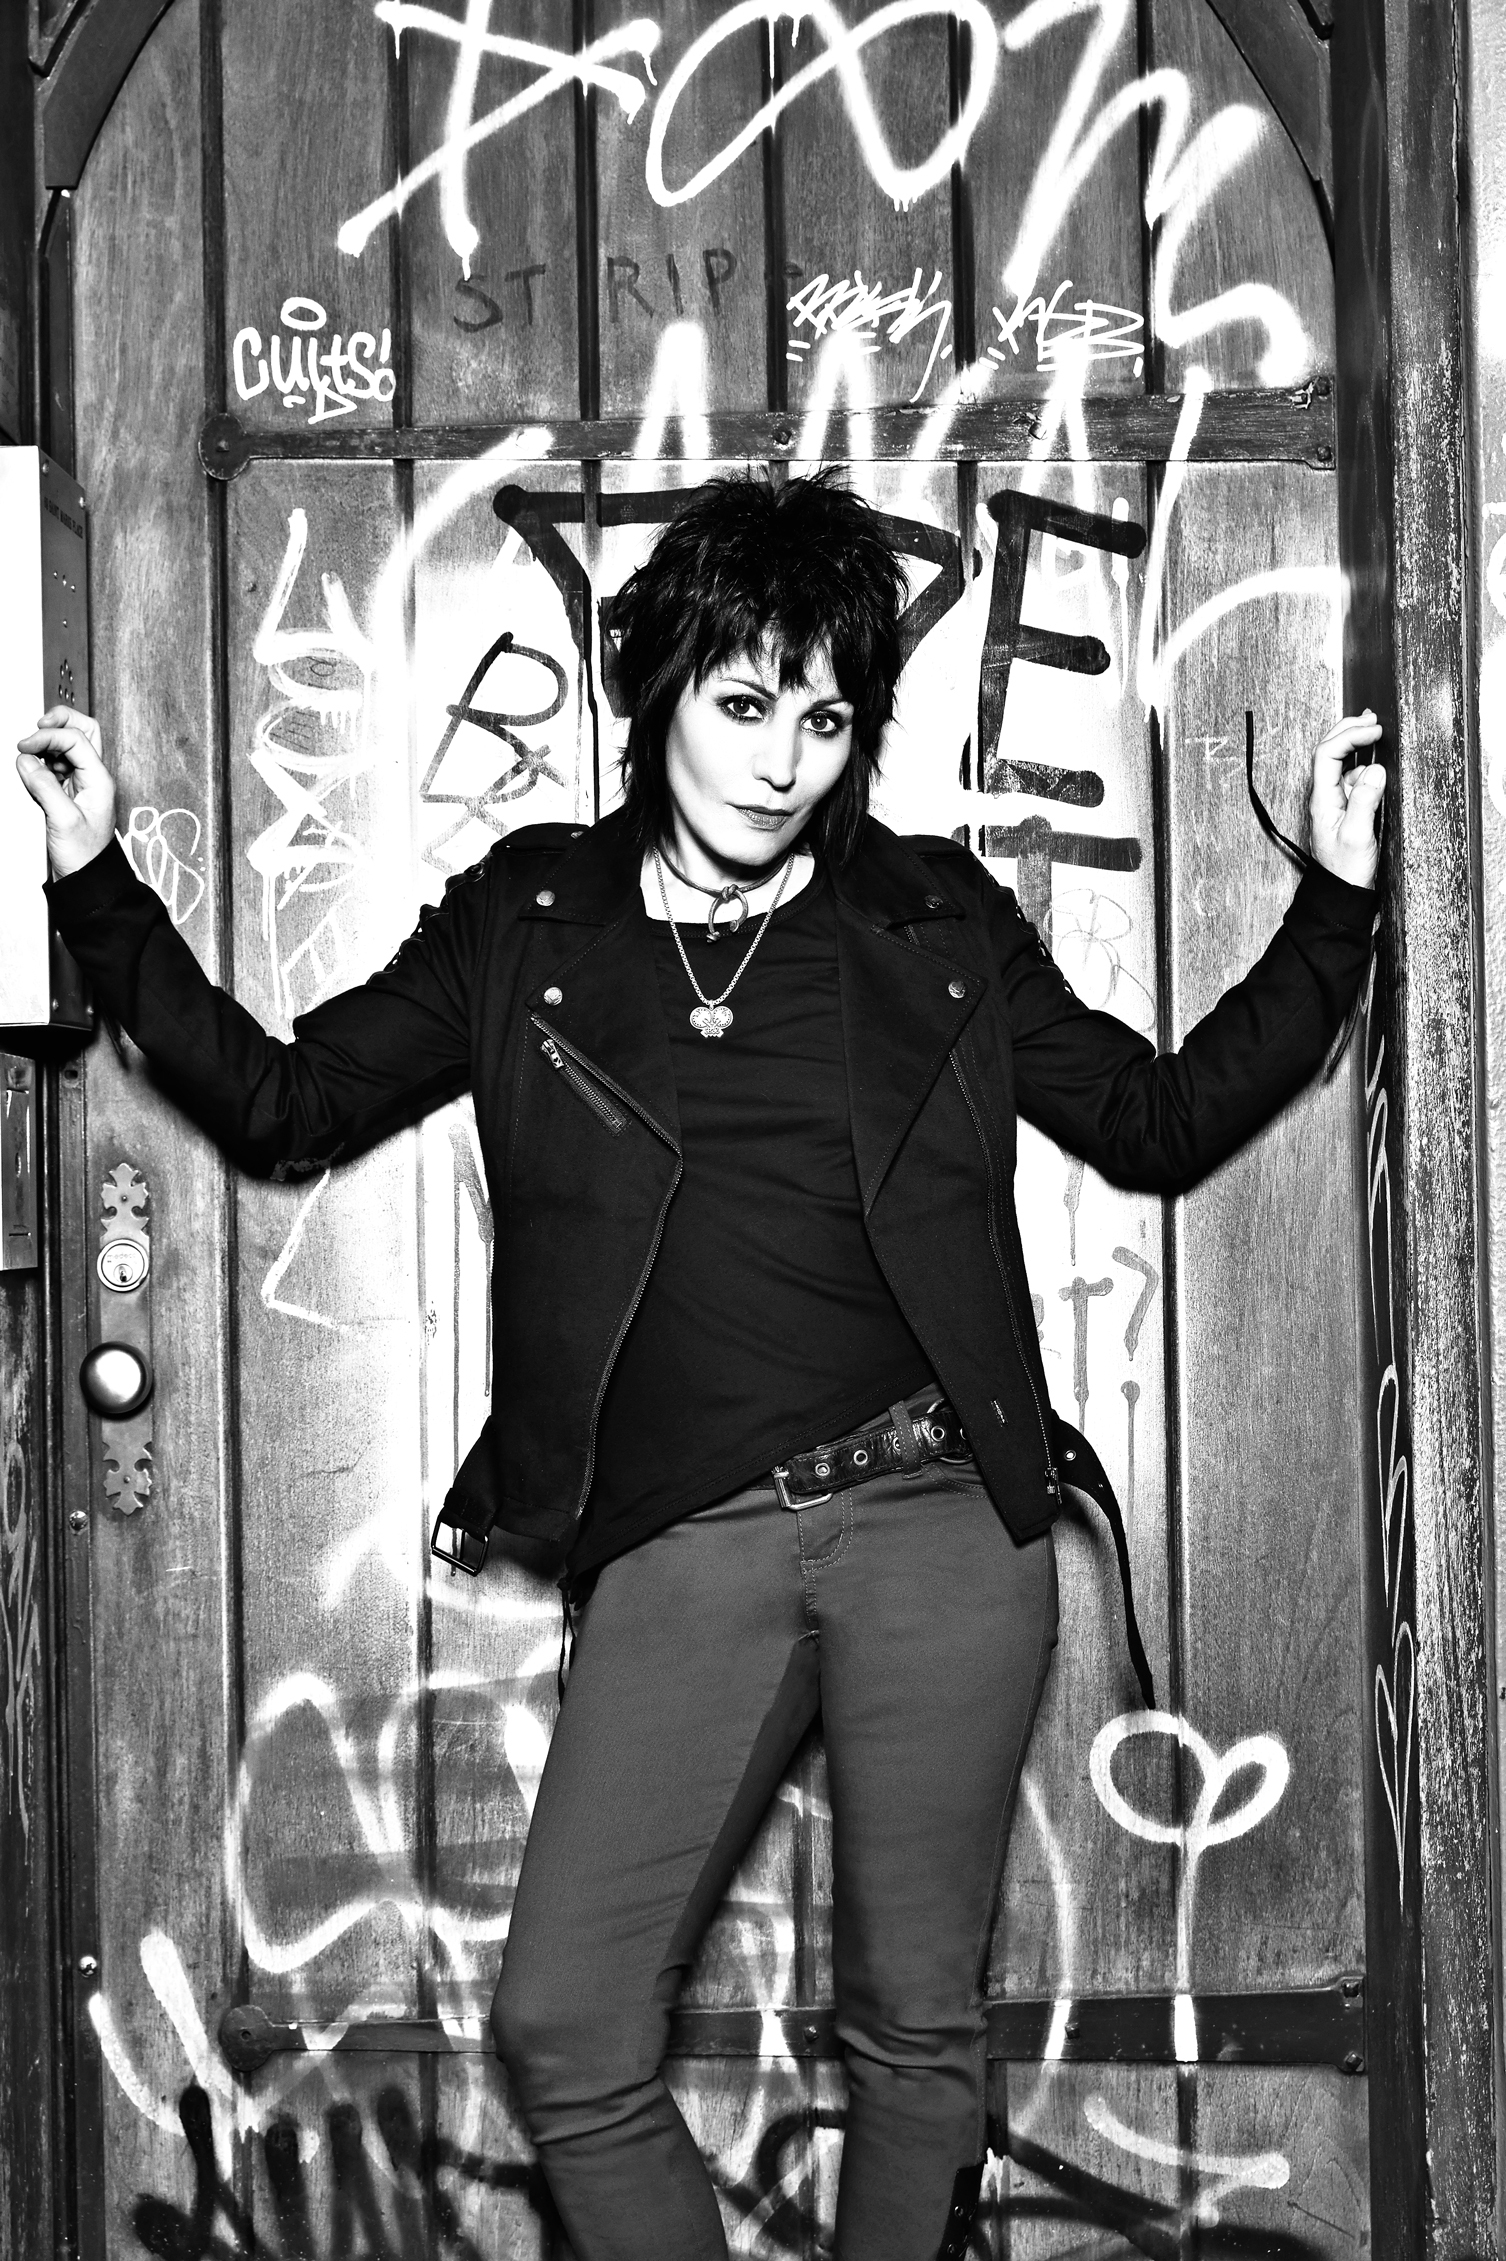 Hot Topic Introduces Fashion Collection Designed by Rock Icon Joan ...